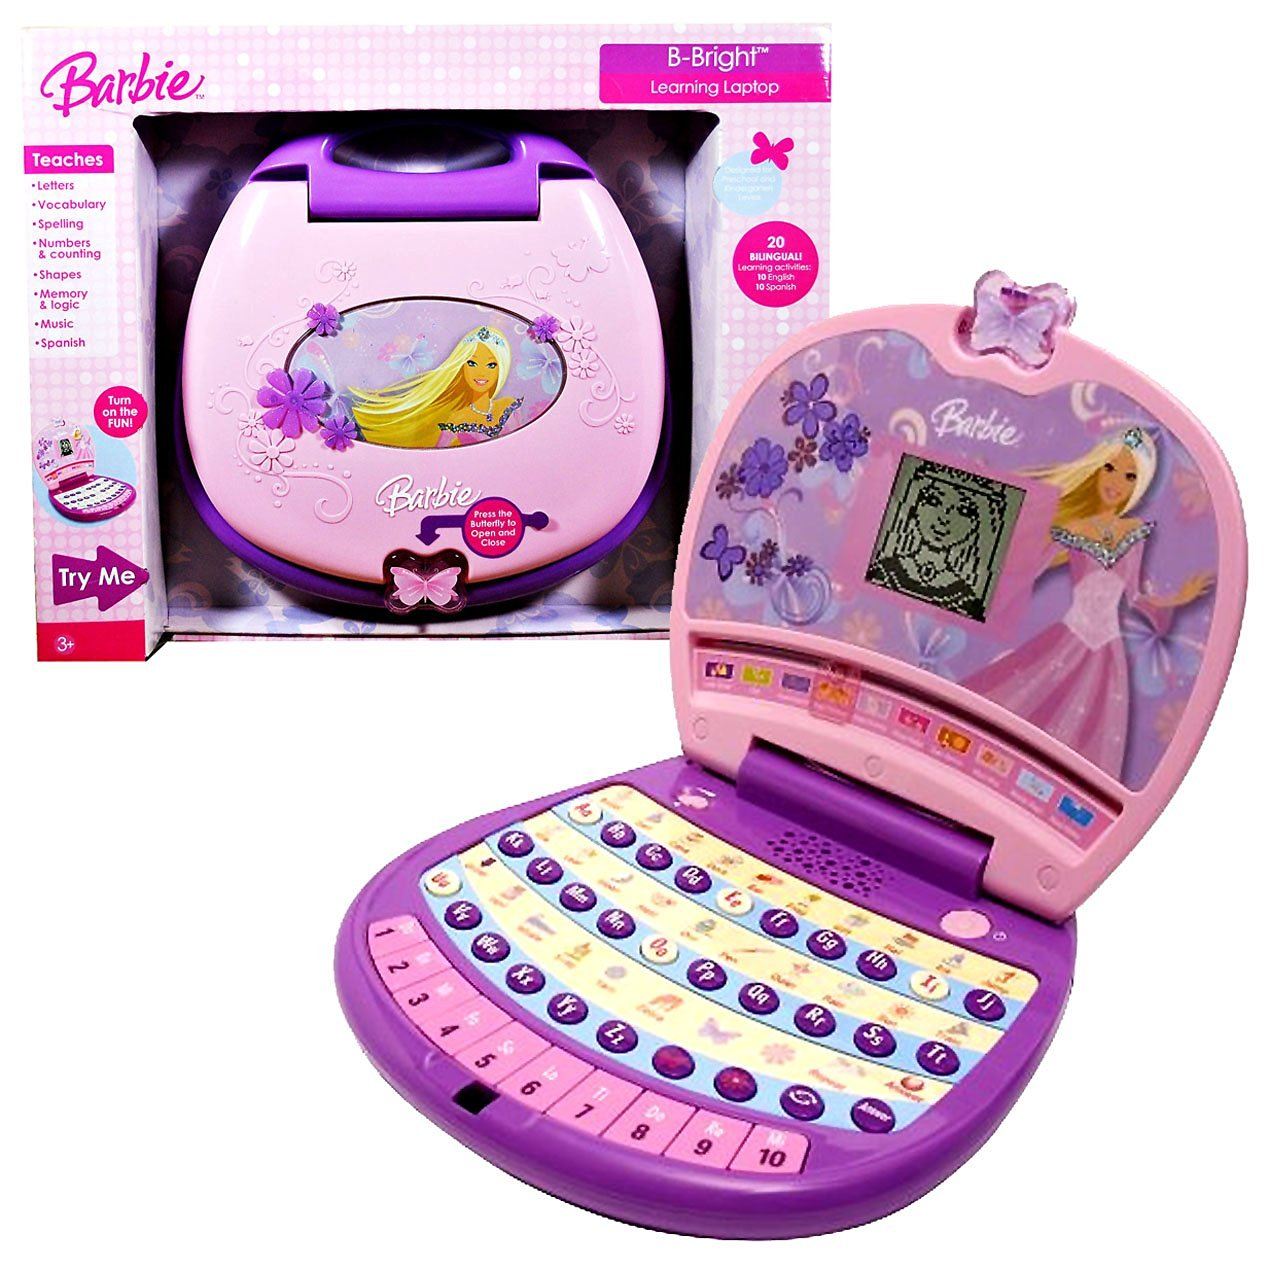 Oregon scientific barbie fashion tablet pink 40